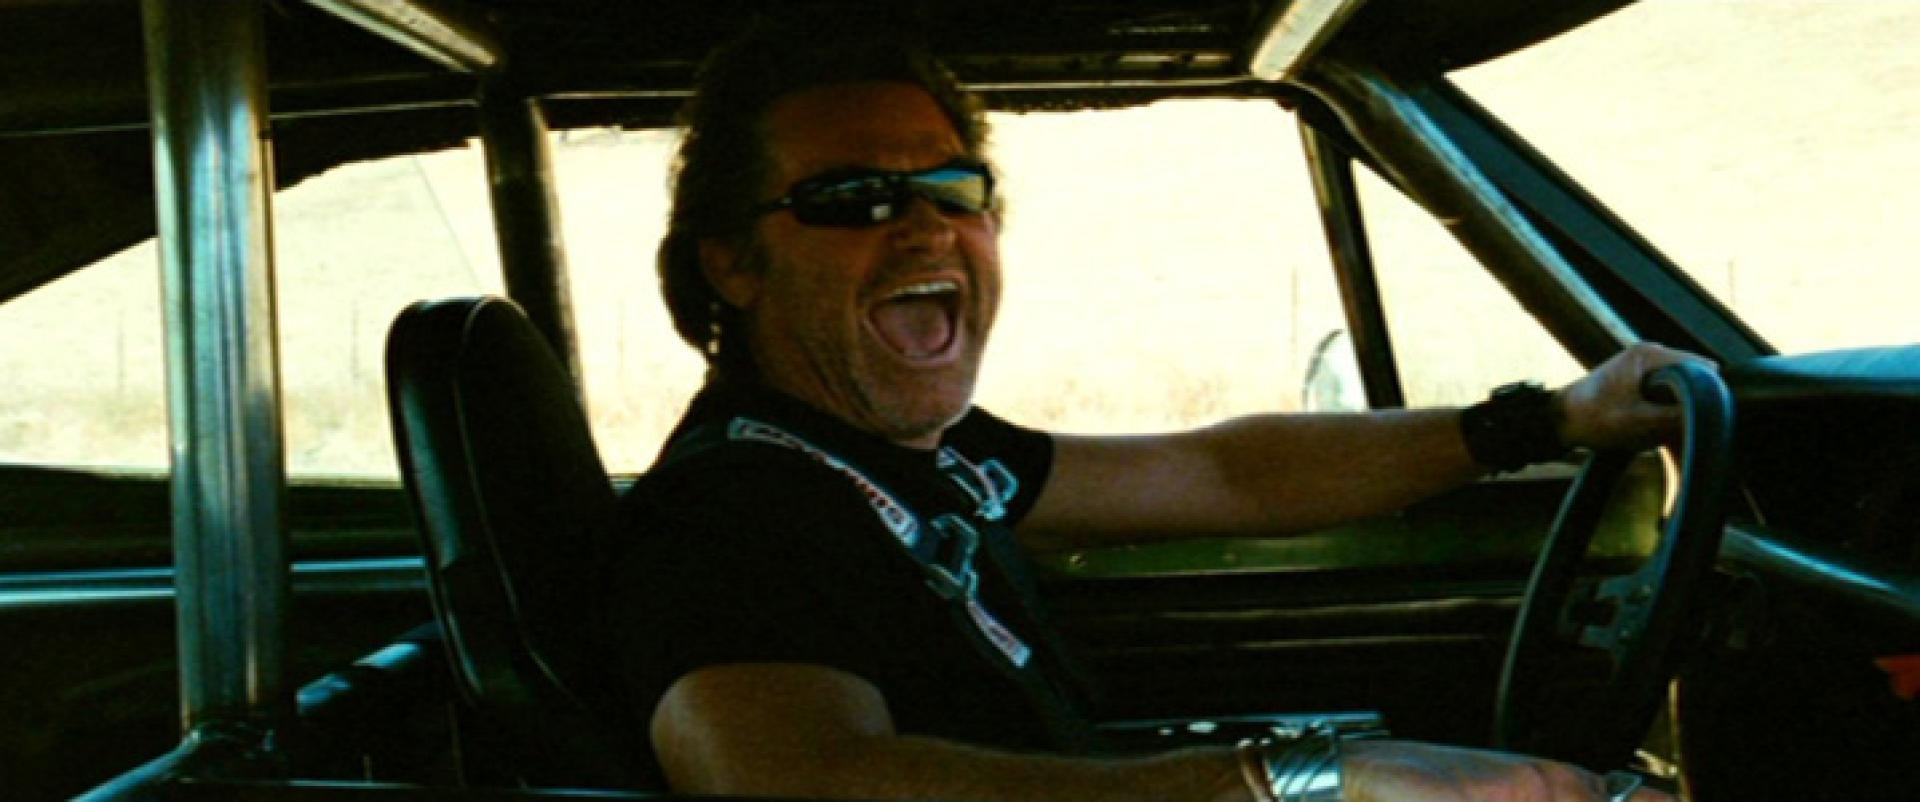 Death Proof - Grindhouse: Halálbiztos (2007)